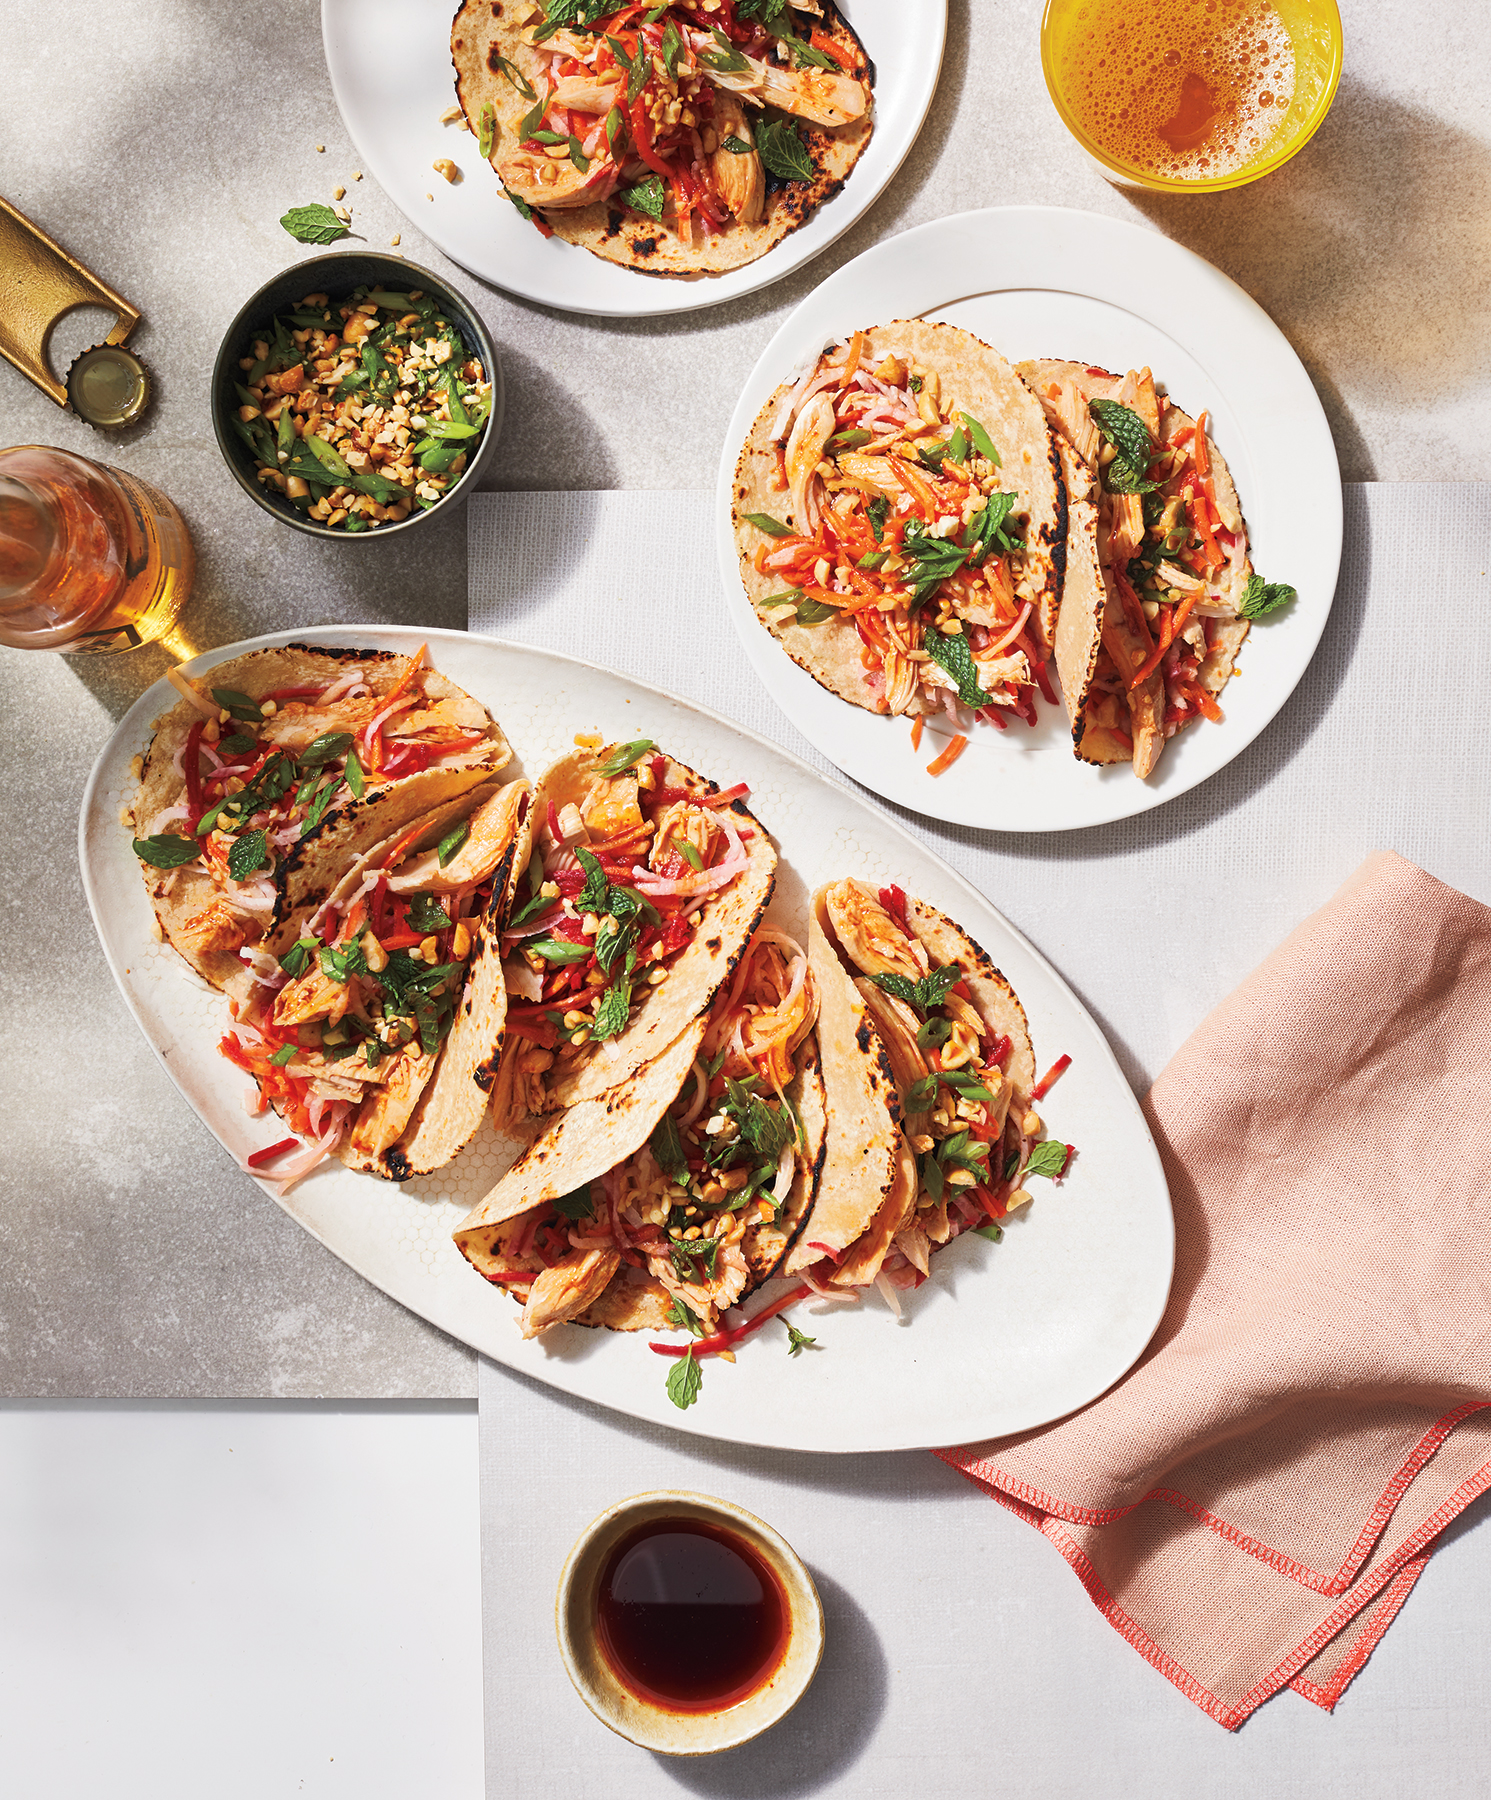 Summer Tacos With Scallion-Peanut Relish